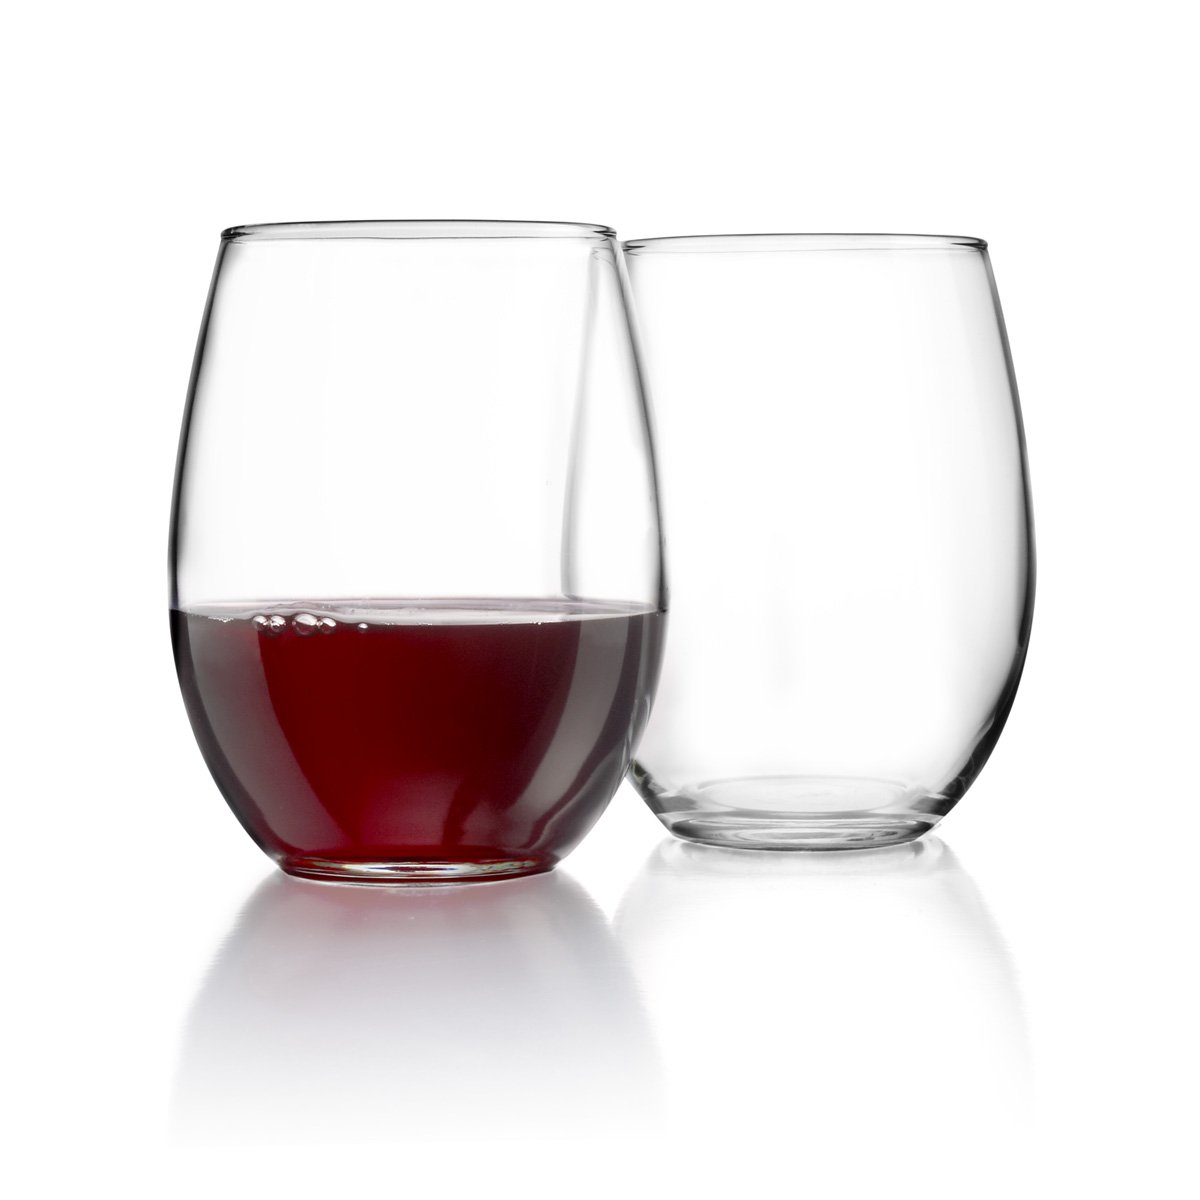 Luminarc Perfection Stemless Wine Glass (Set of 12), 15 oz, Clear by Luminarc (Image #1)